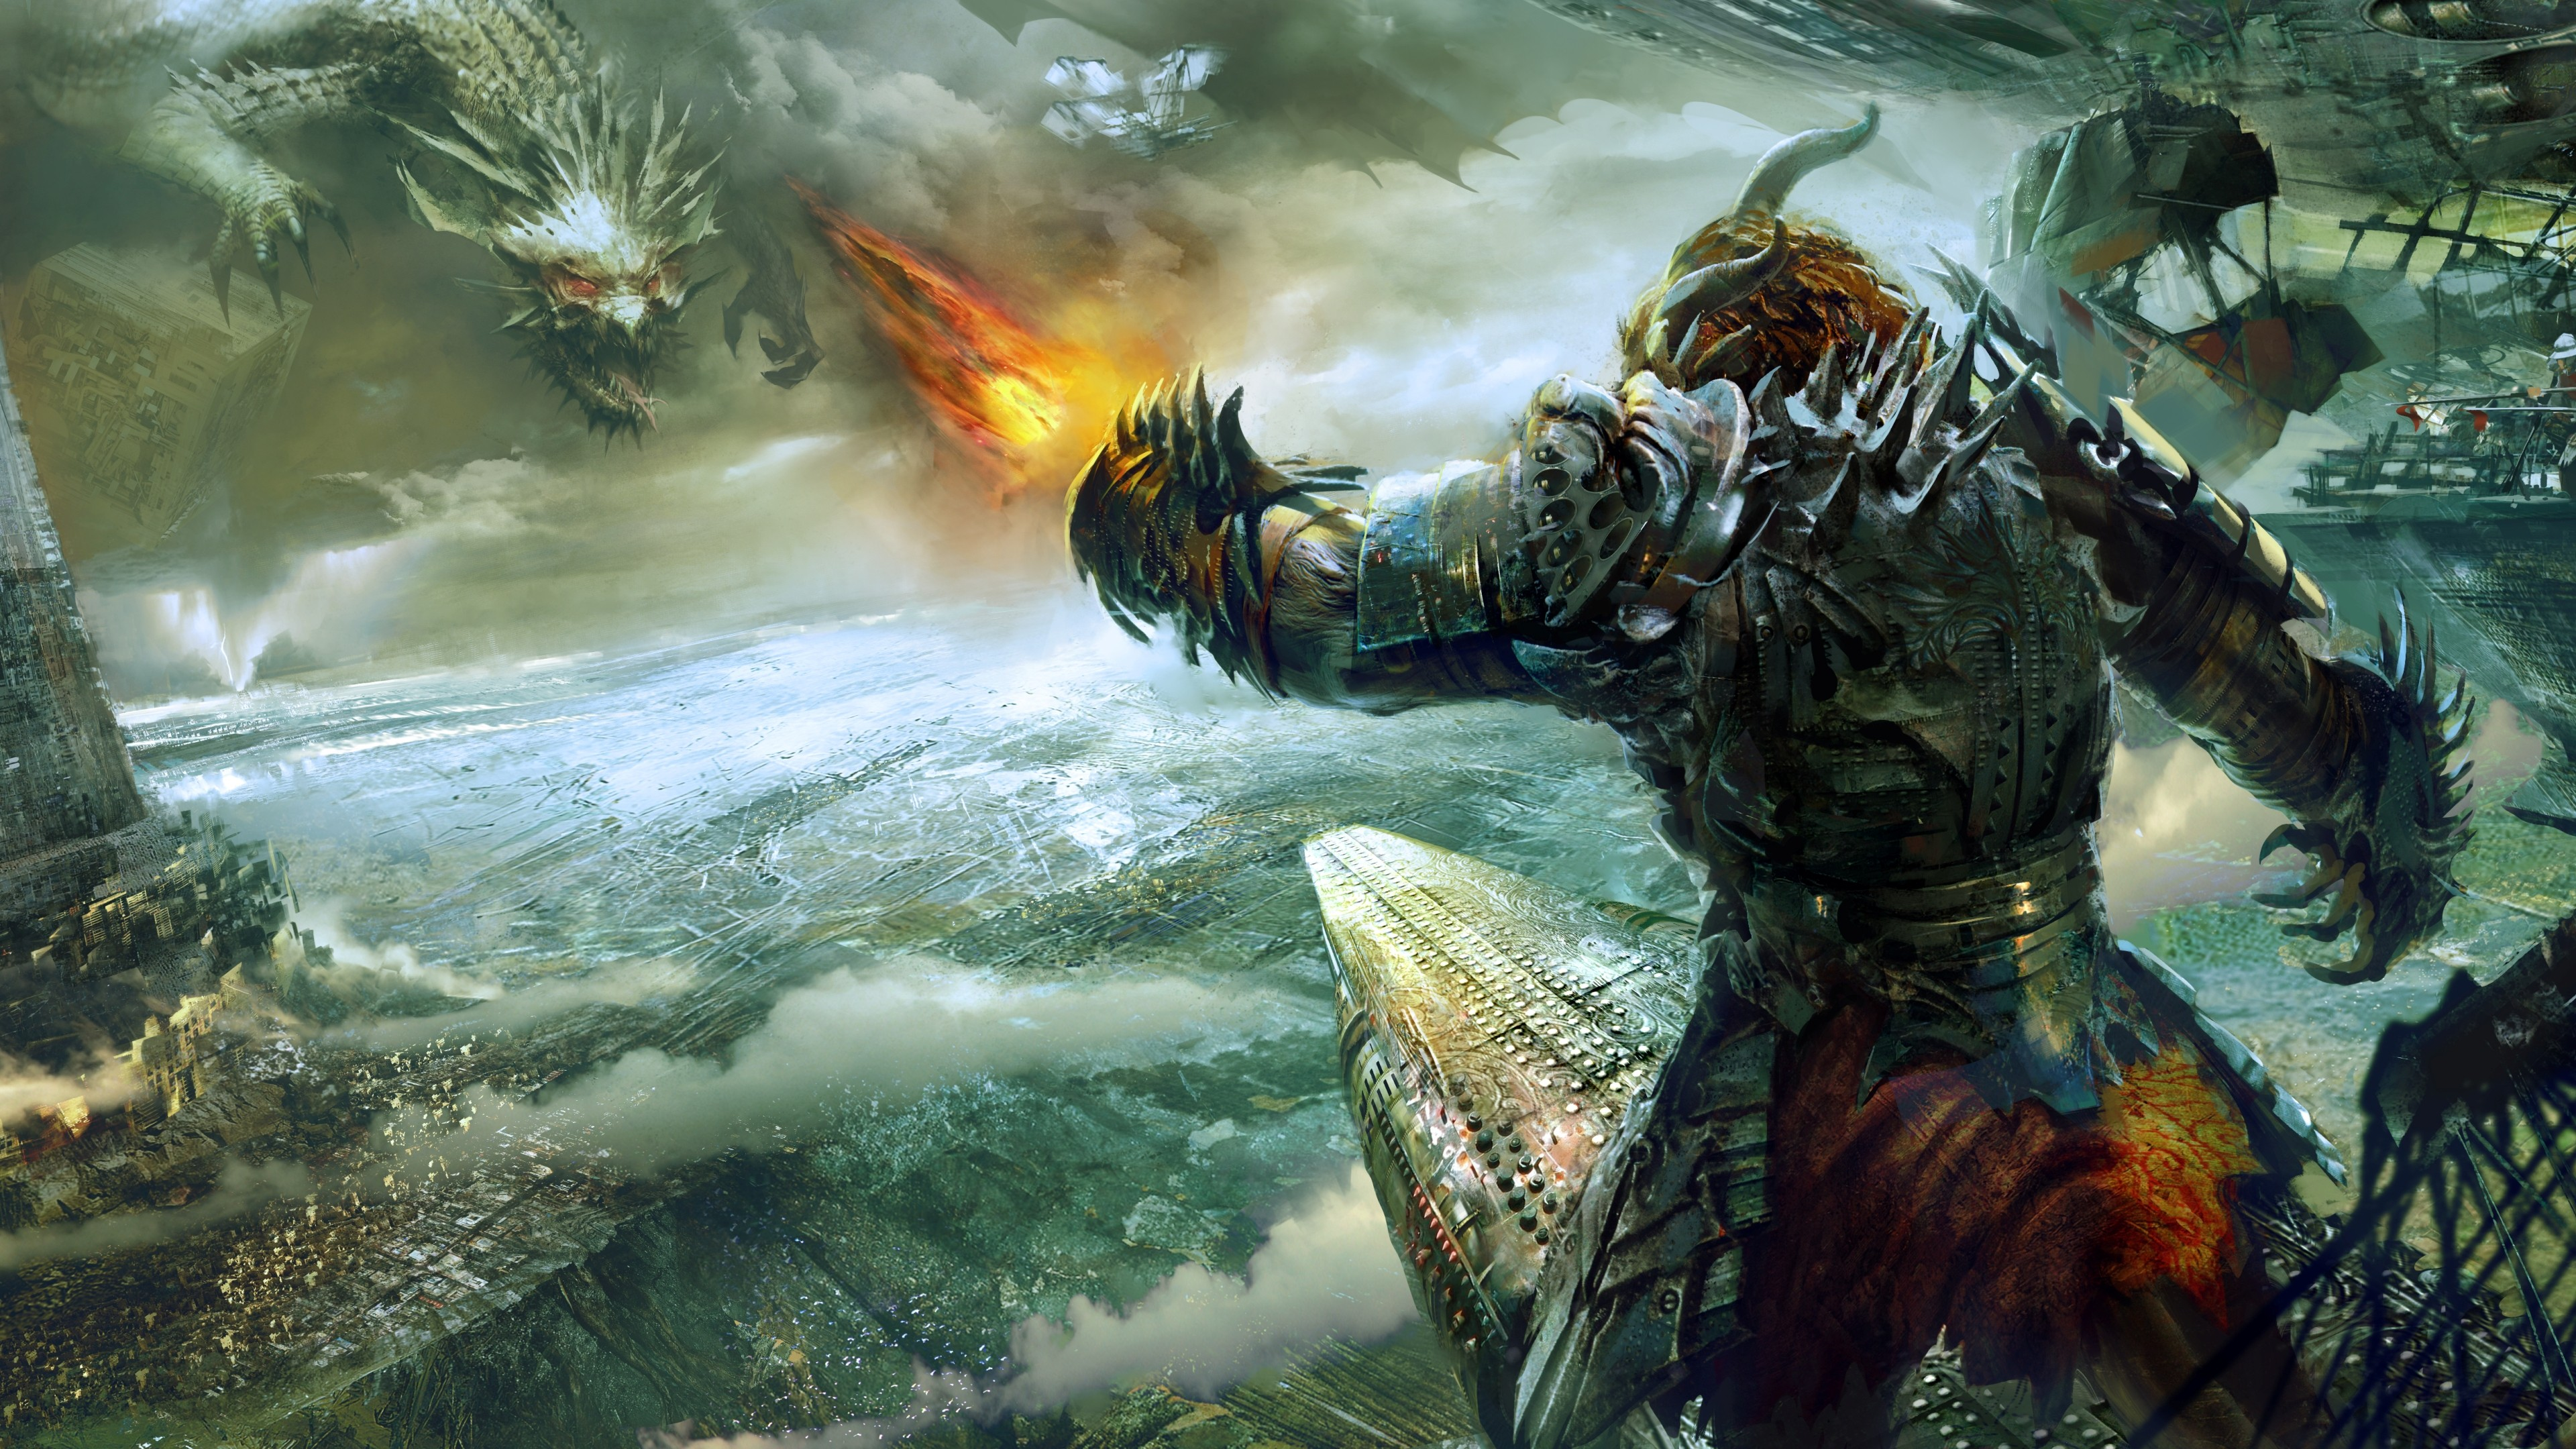 Pictures Guild Wars Guild Wars 2 Armor Dragons Monsters 3840x2160